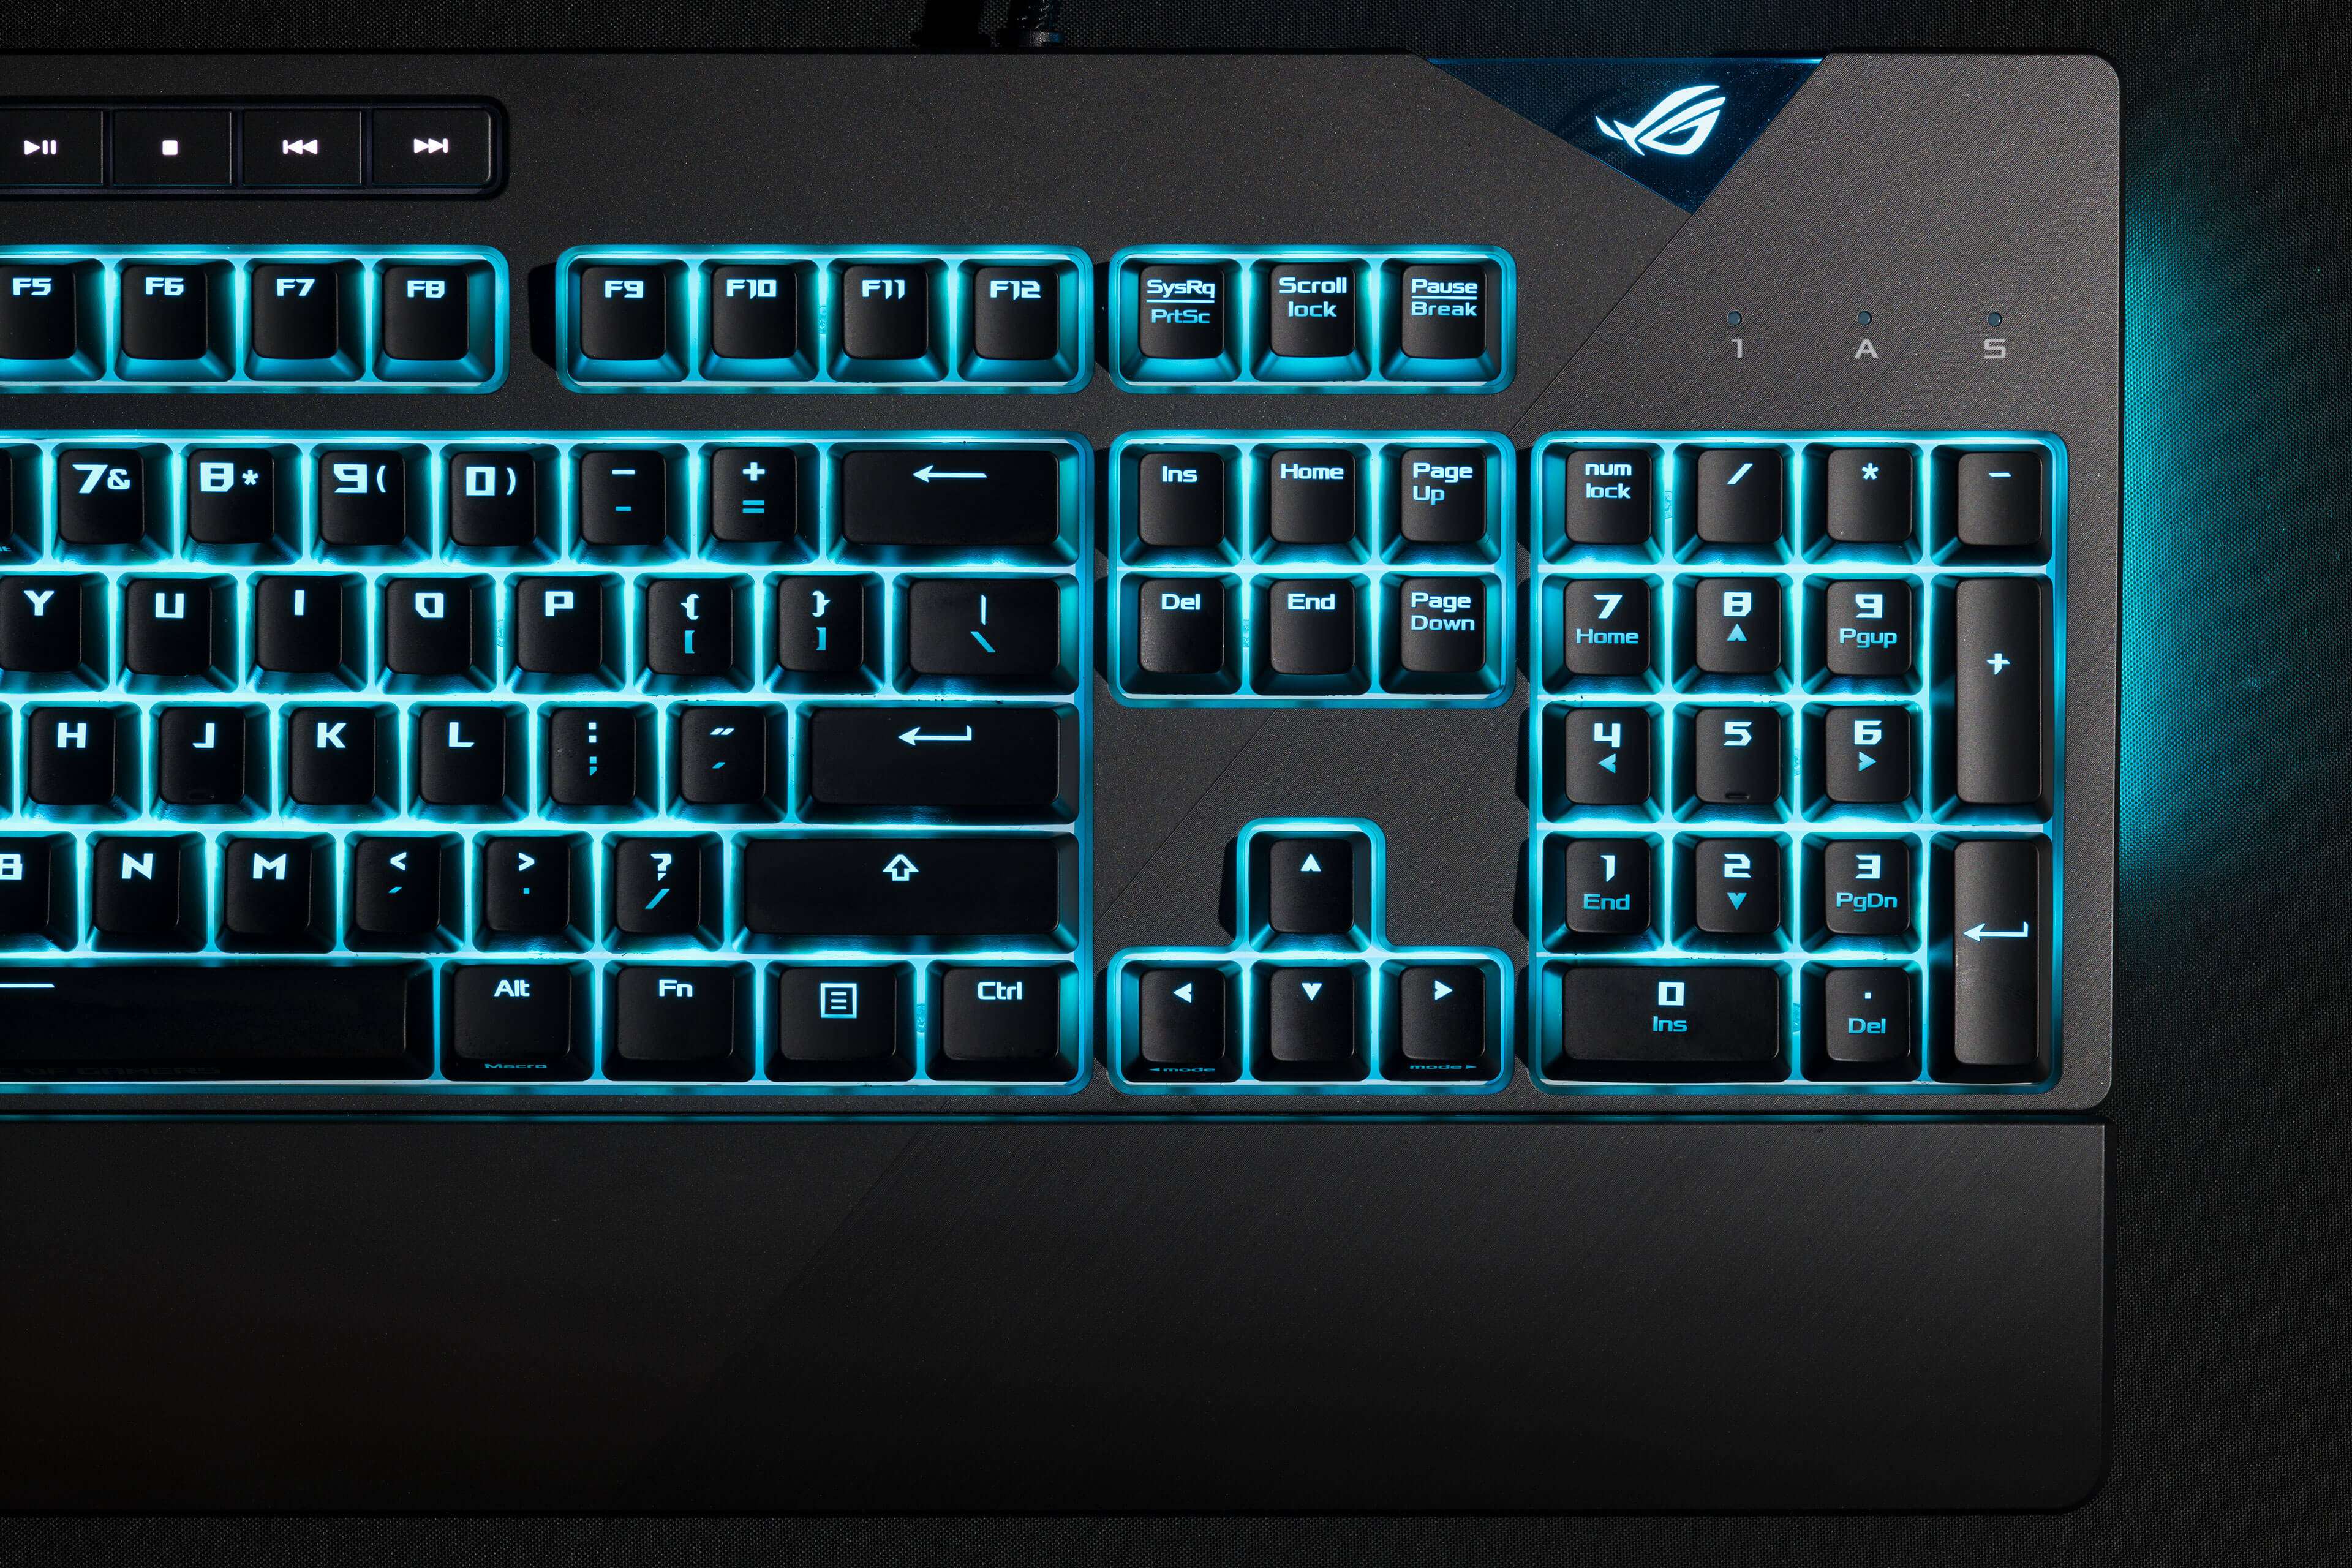 ROG Strix Flare 2D 1 Close Up Blue - ASUS ROG Strix Flare Mechanical Gaming Keyboard Now Available in PH